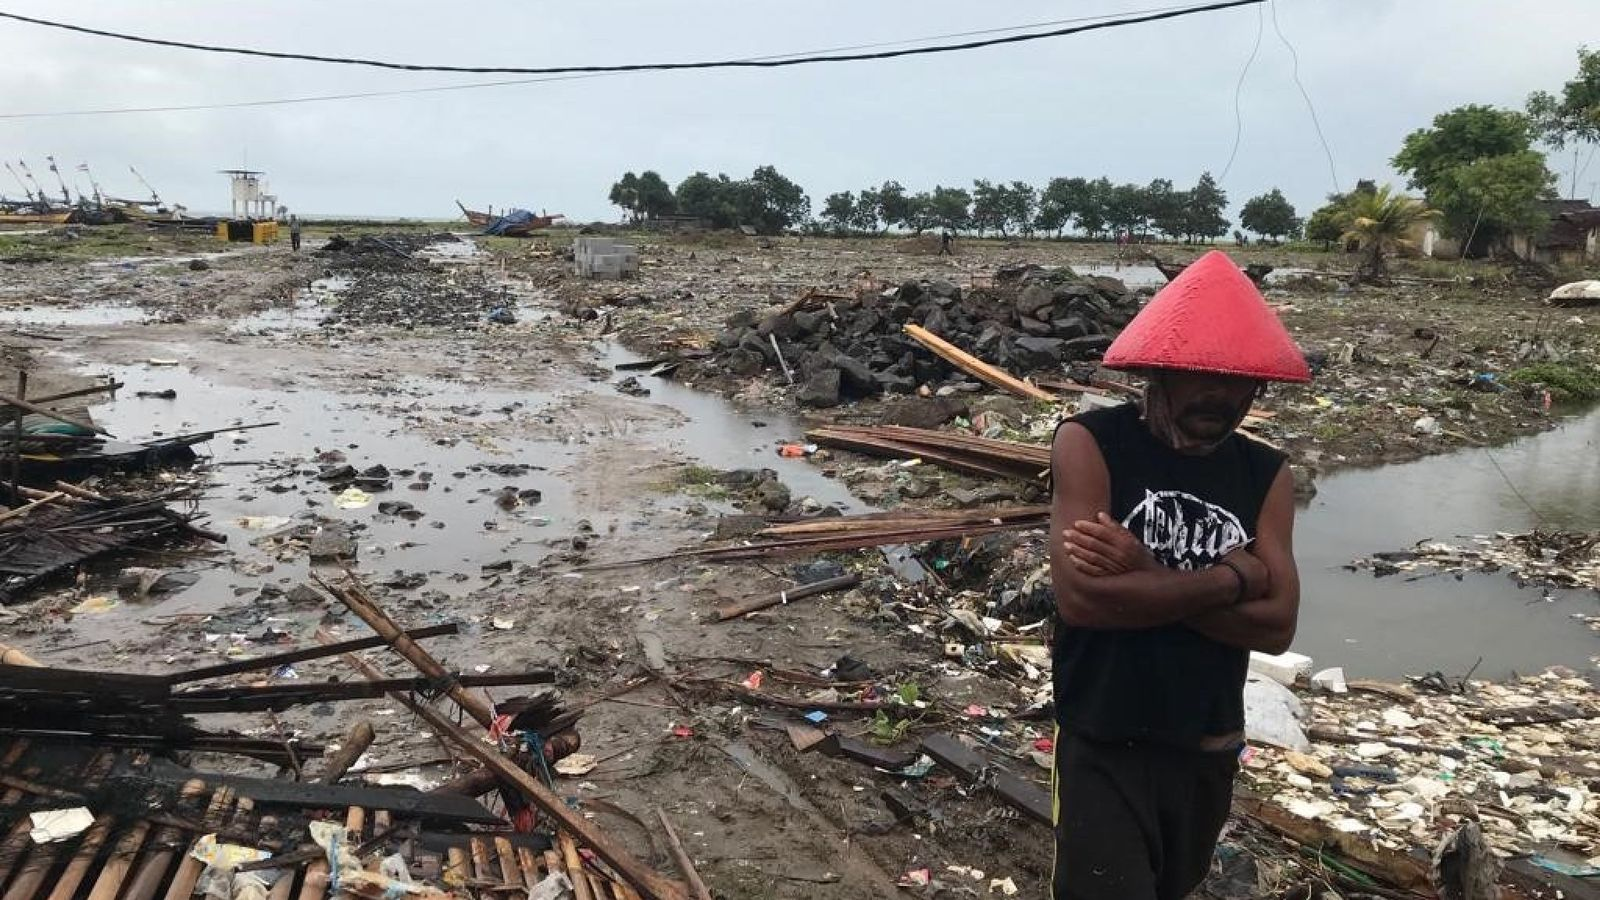 Indonesia tsunami: Walking through the remains of a destroyed village